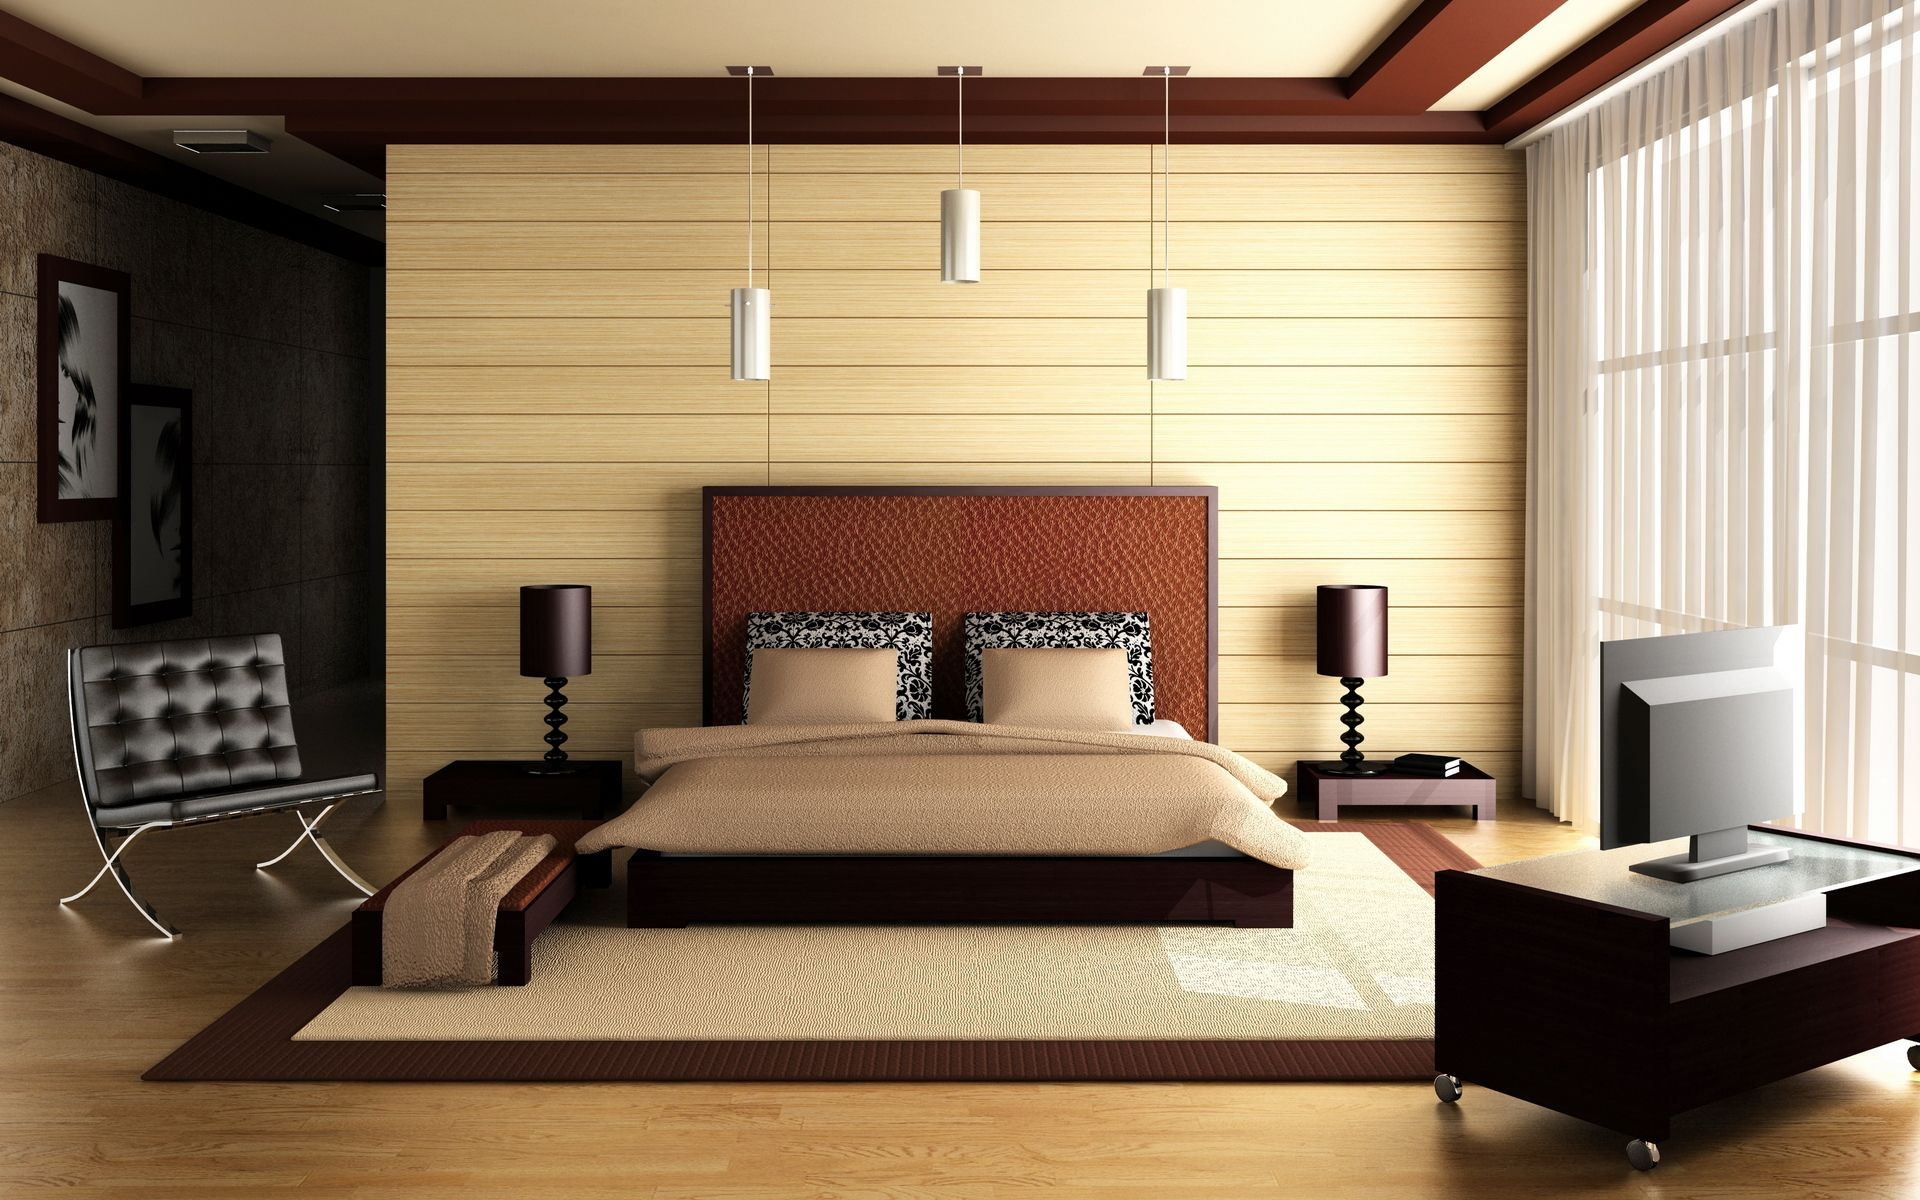 Interior Bedroom Design Bedroom Wall Art Httponfbp3Lewf  Bedrooms  Pinterest